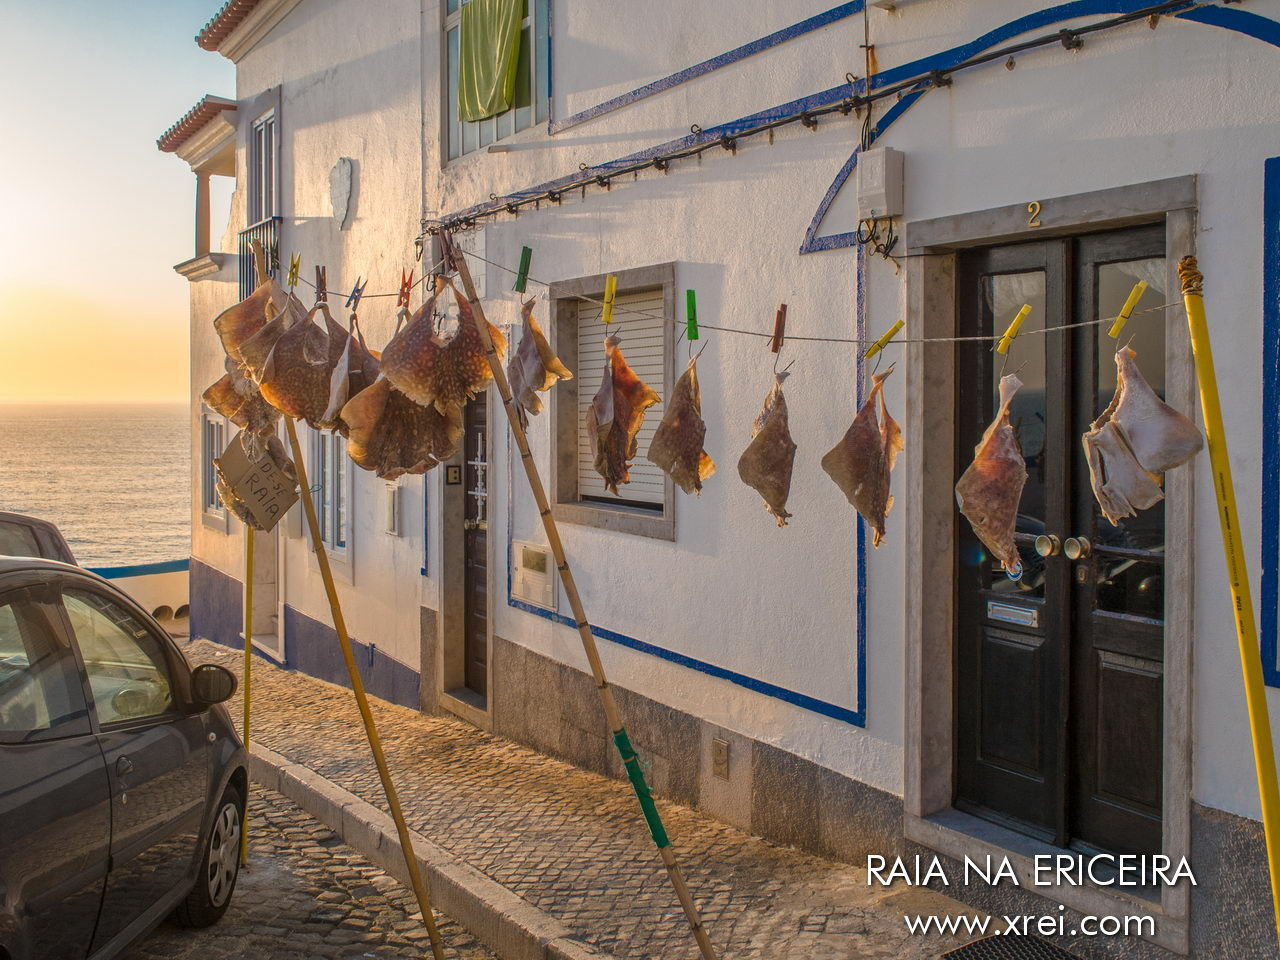 Ray, dried on the clothesline, to be prepared as a gastronomic delicacy typical of Ericeira in the municipality of Mafra. The streak is dried in the sun on a clothesline, as if it were a piece of clothing, afterwards it is well washed, and cured in brine, a tradition that comes from the times when it was necessary to guarantee sustenance for the days of greatest scarcity